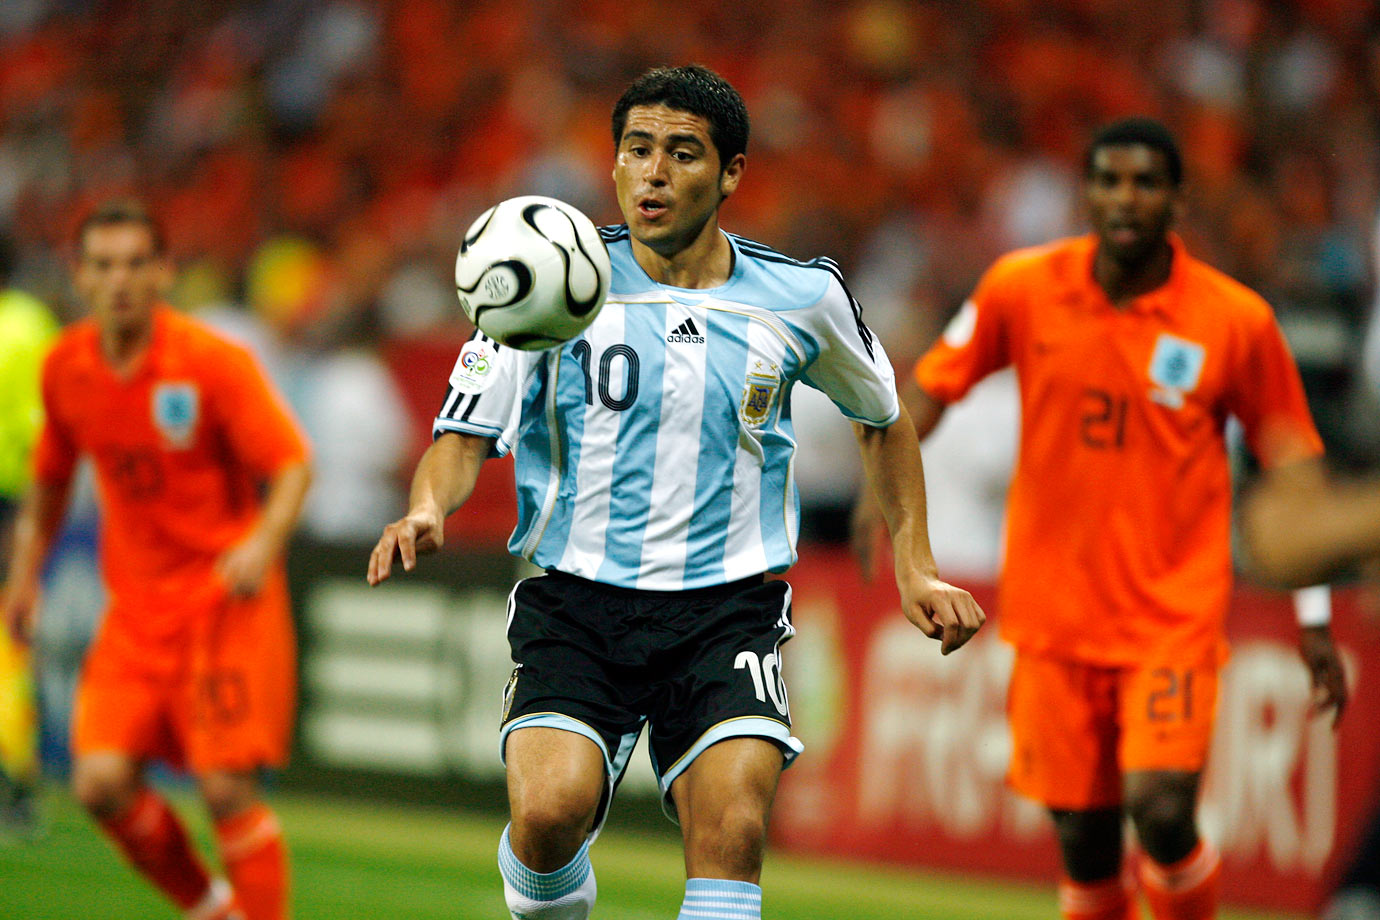 Argentine soccer star Juan Roman Riquelme retired Jan. 26, ending a nearly two-decade-long professional career that included stints with Boca, Barcelona, Villarreal and Argentinos and 51 appearances for the Argentine national team. Riquelme, who wore the iconic No. 10 for Argentina, was known around the world for his playmaking skills and delivered three assists at the 2006 World Cup, where Argentina reached the quarterfinals.